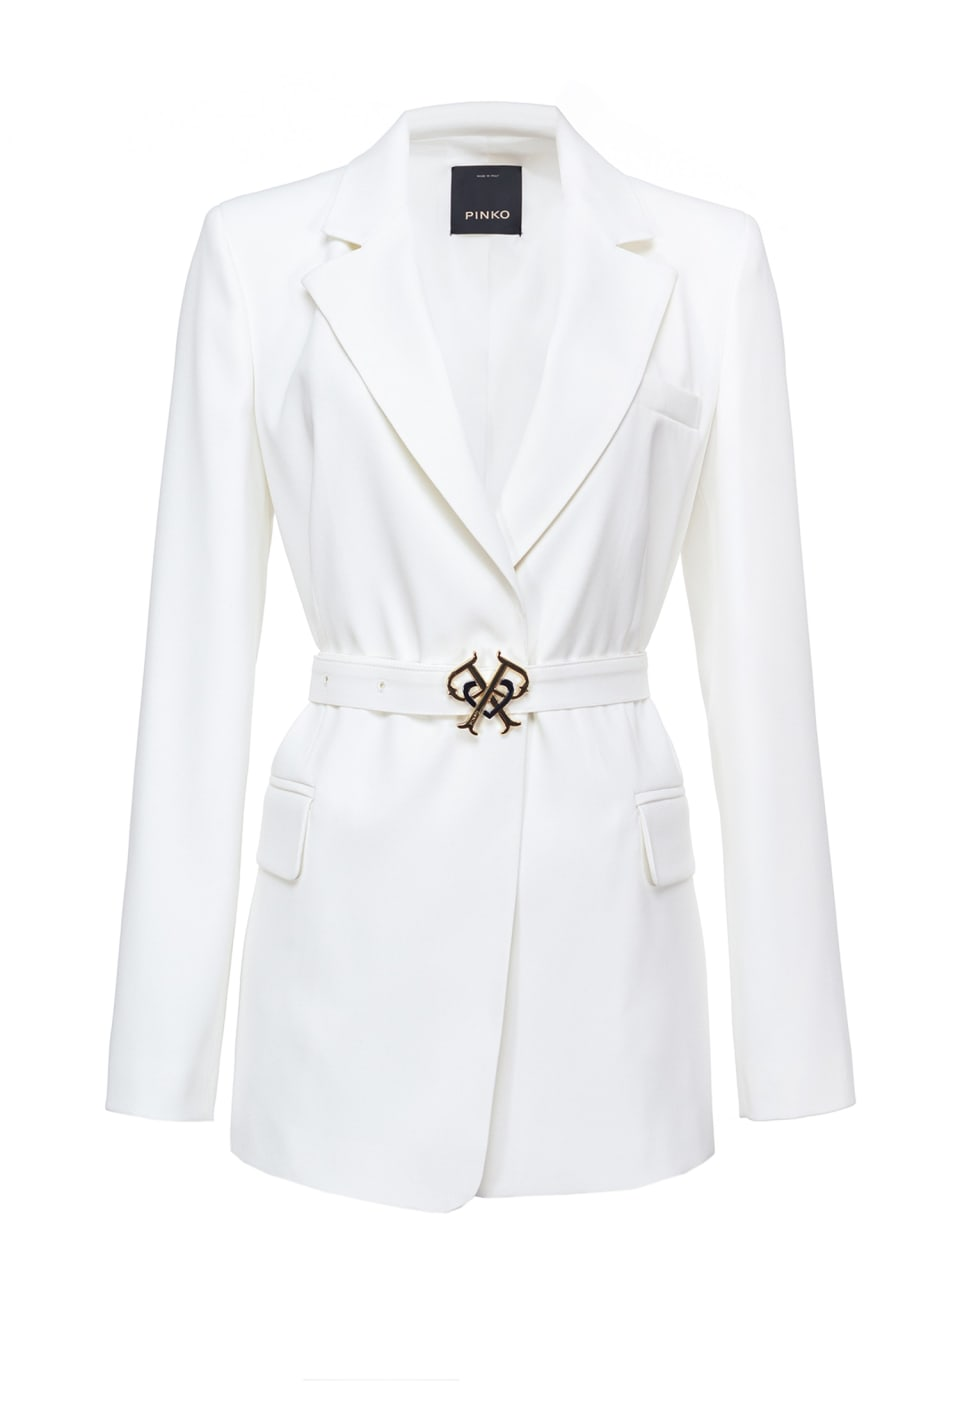 Double P blazer with buckle - Pinko